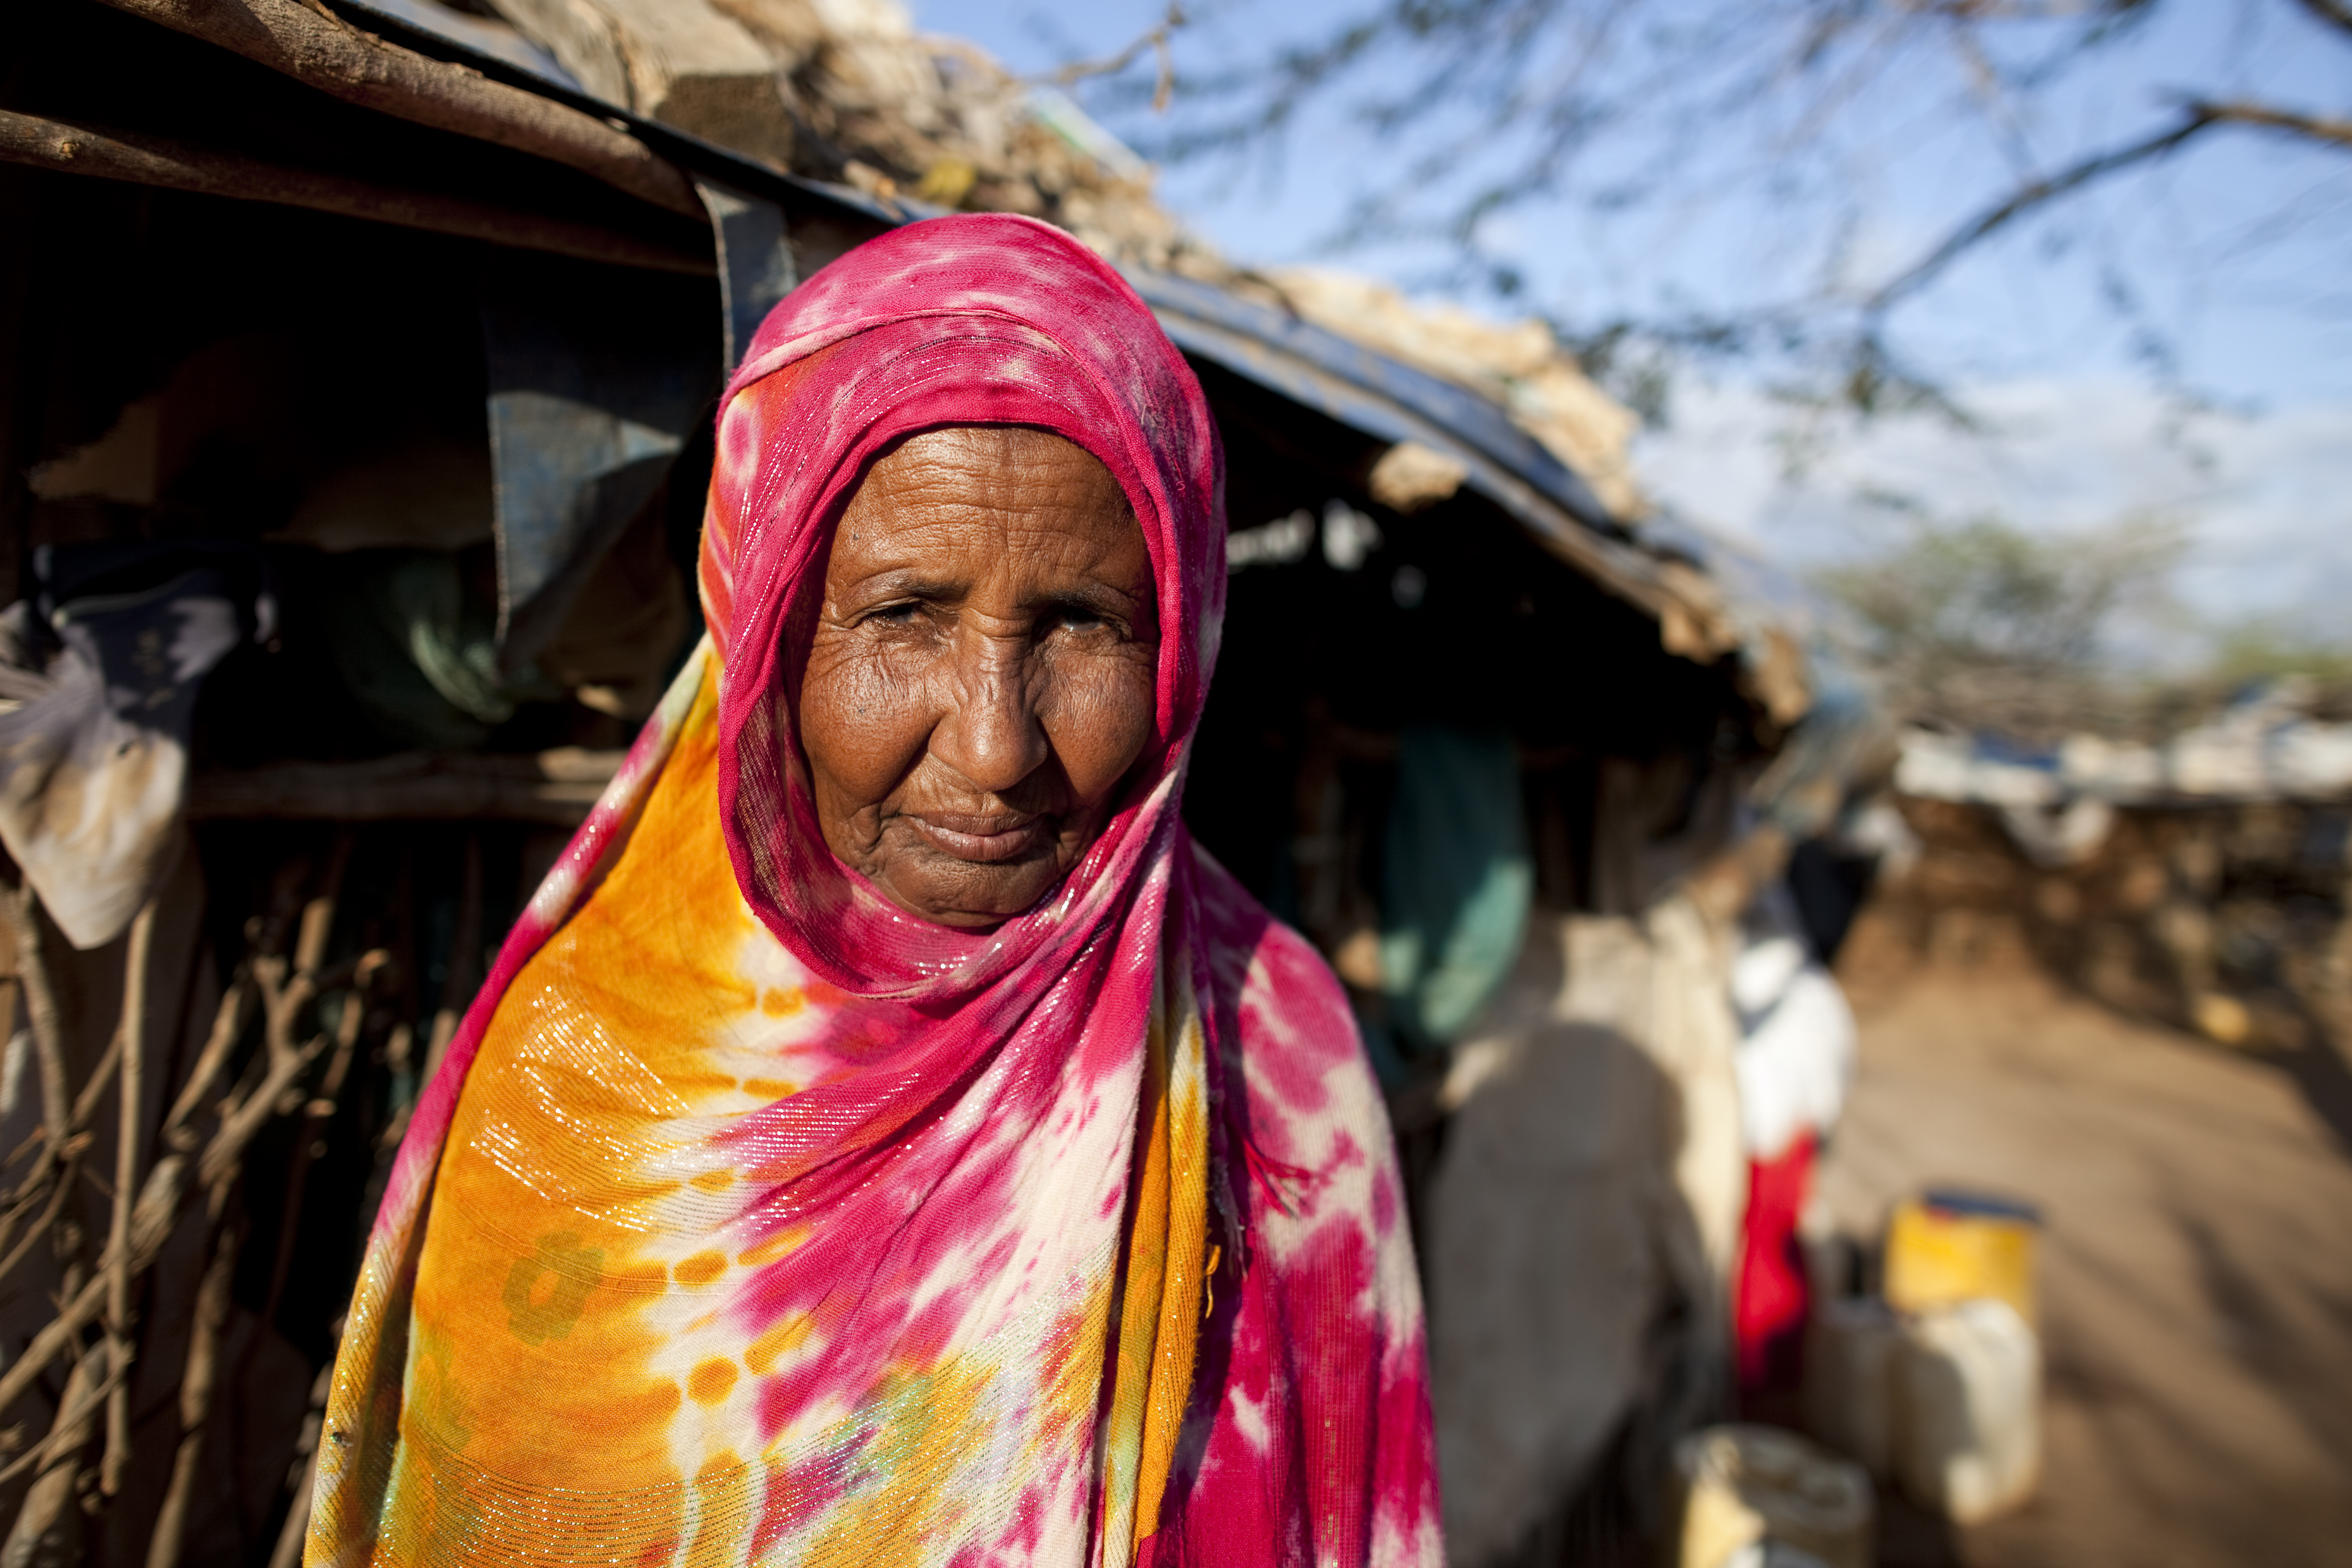 Habbiba Ali was forced to leave her home in Somalia due to violence.